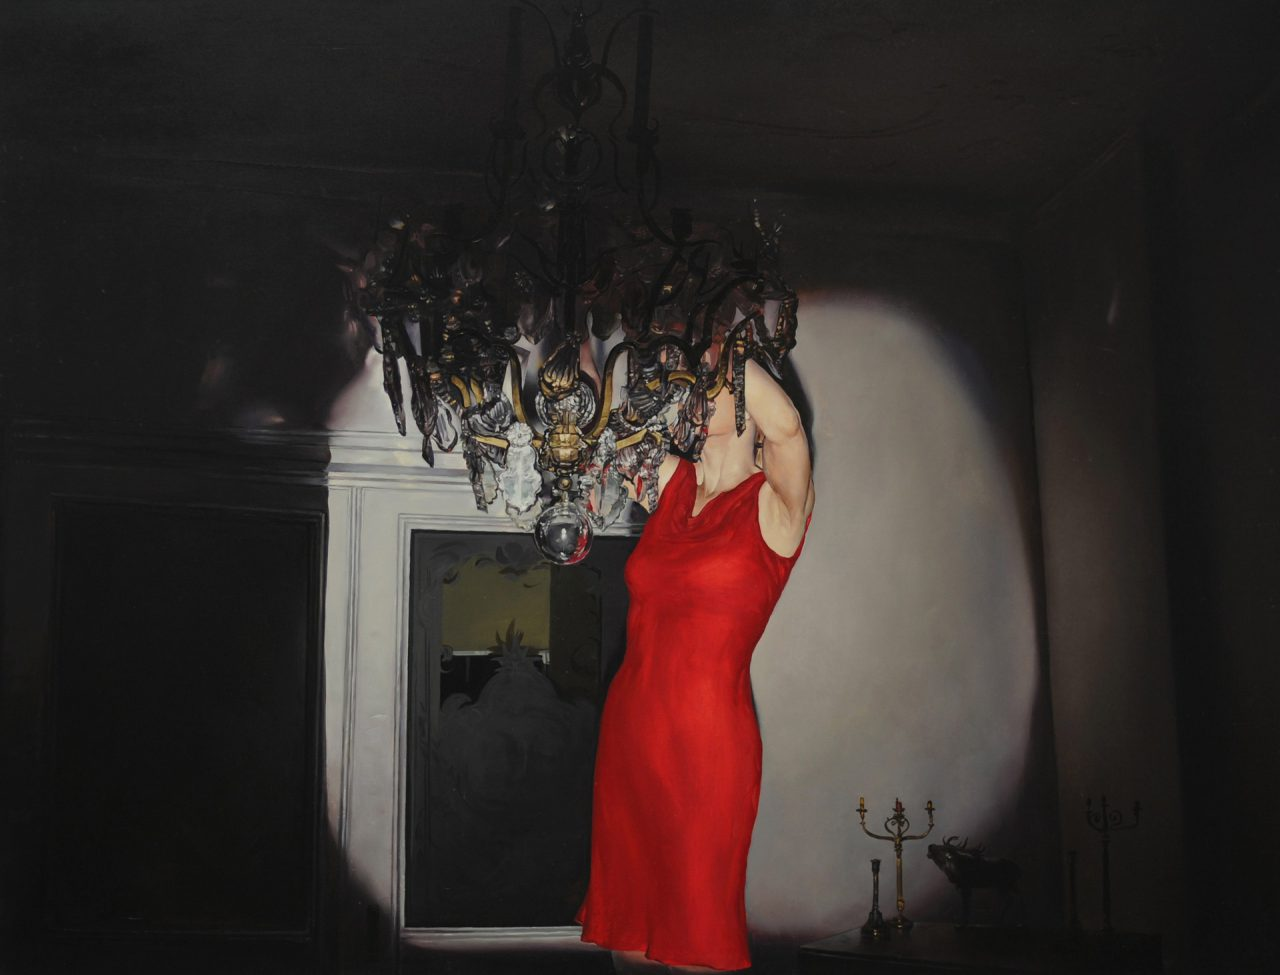 red dress | Oil on canvas 47.24 x 63 inches / 120 x 160 centimeters